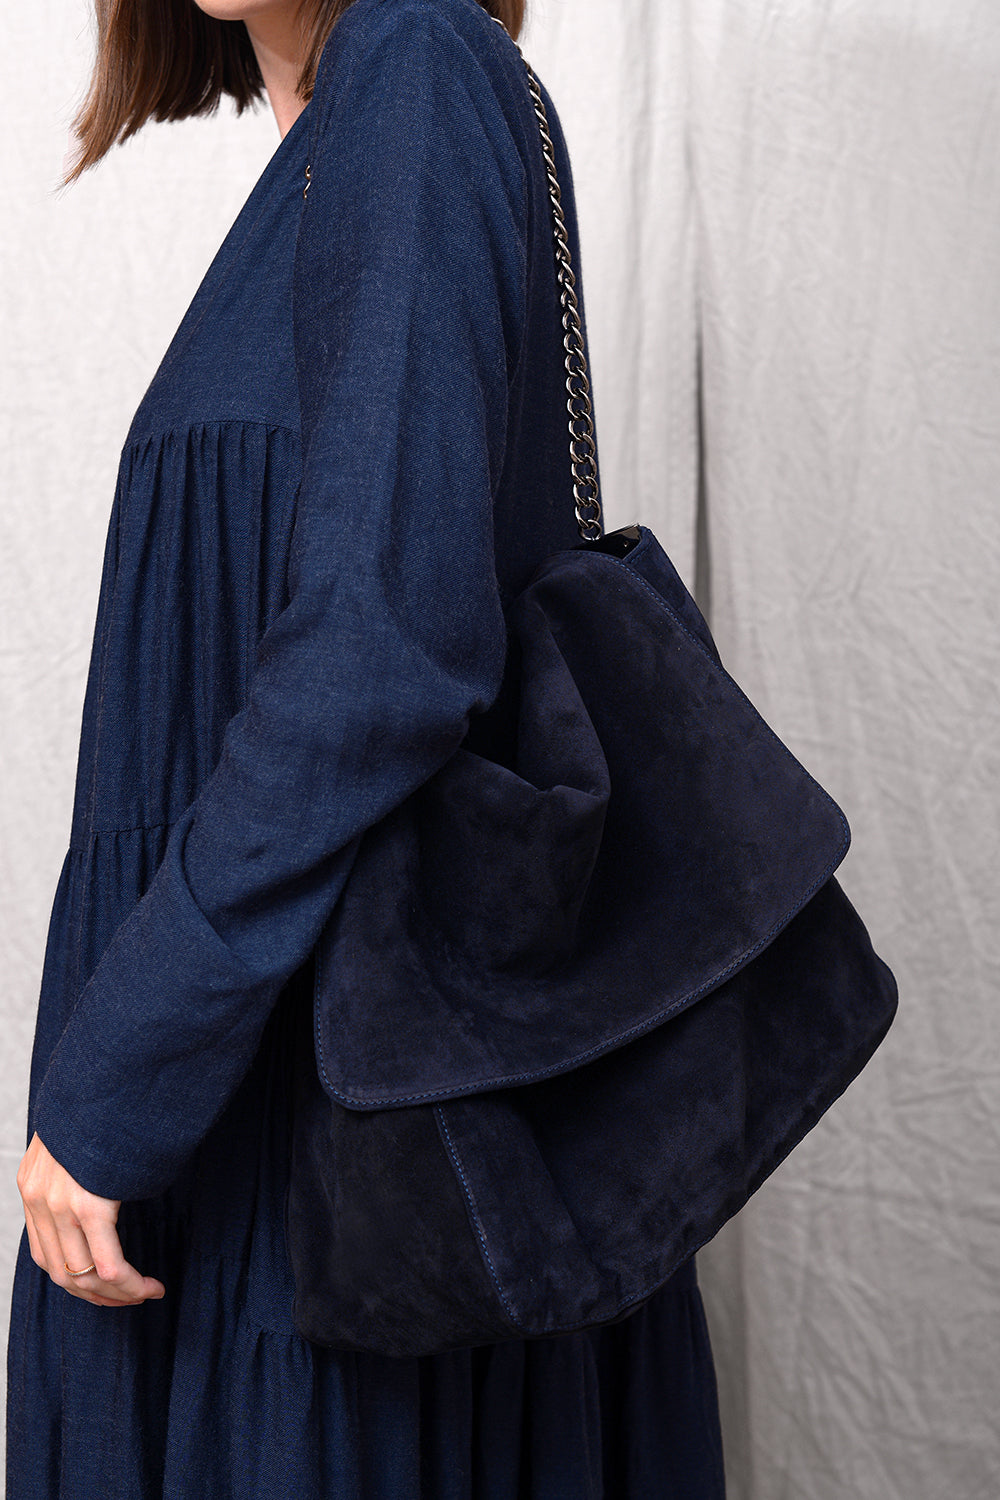 Bo Mirjam Bag - navy